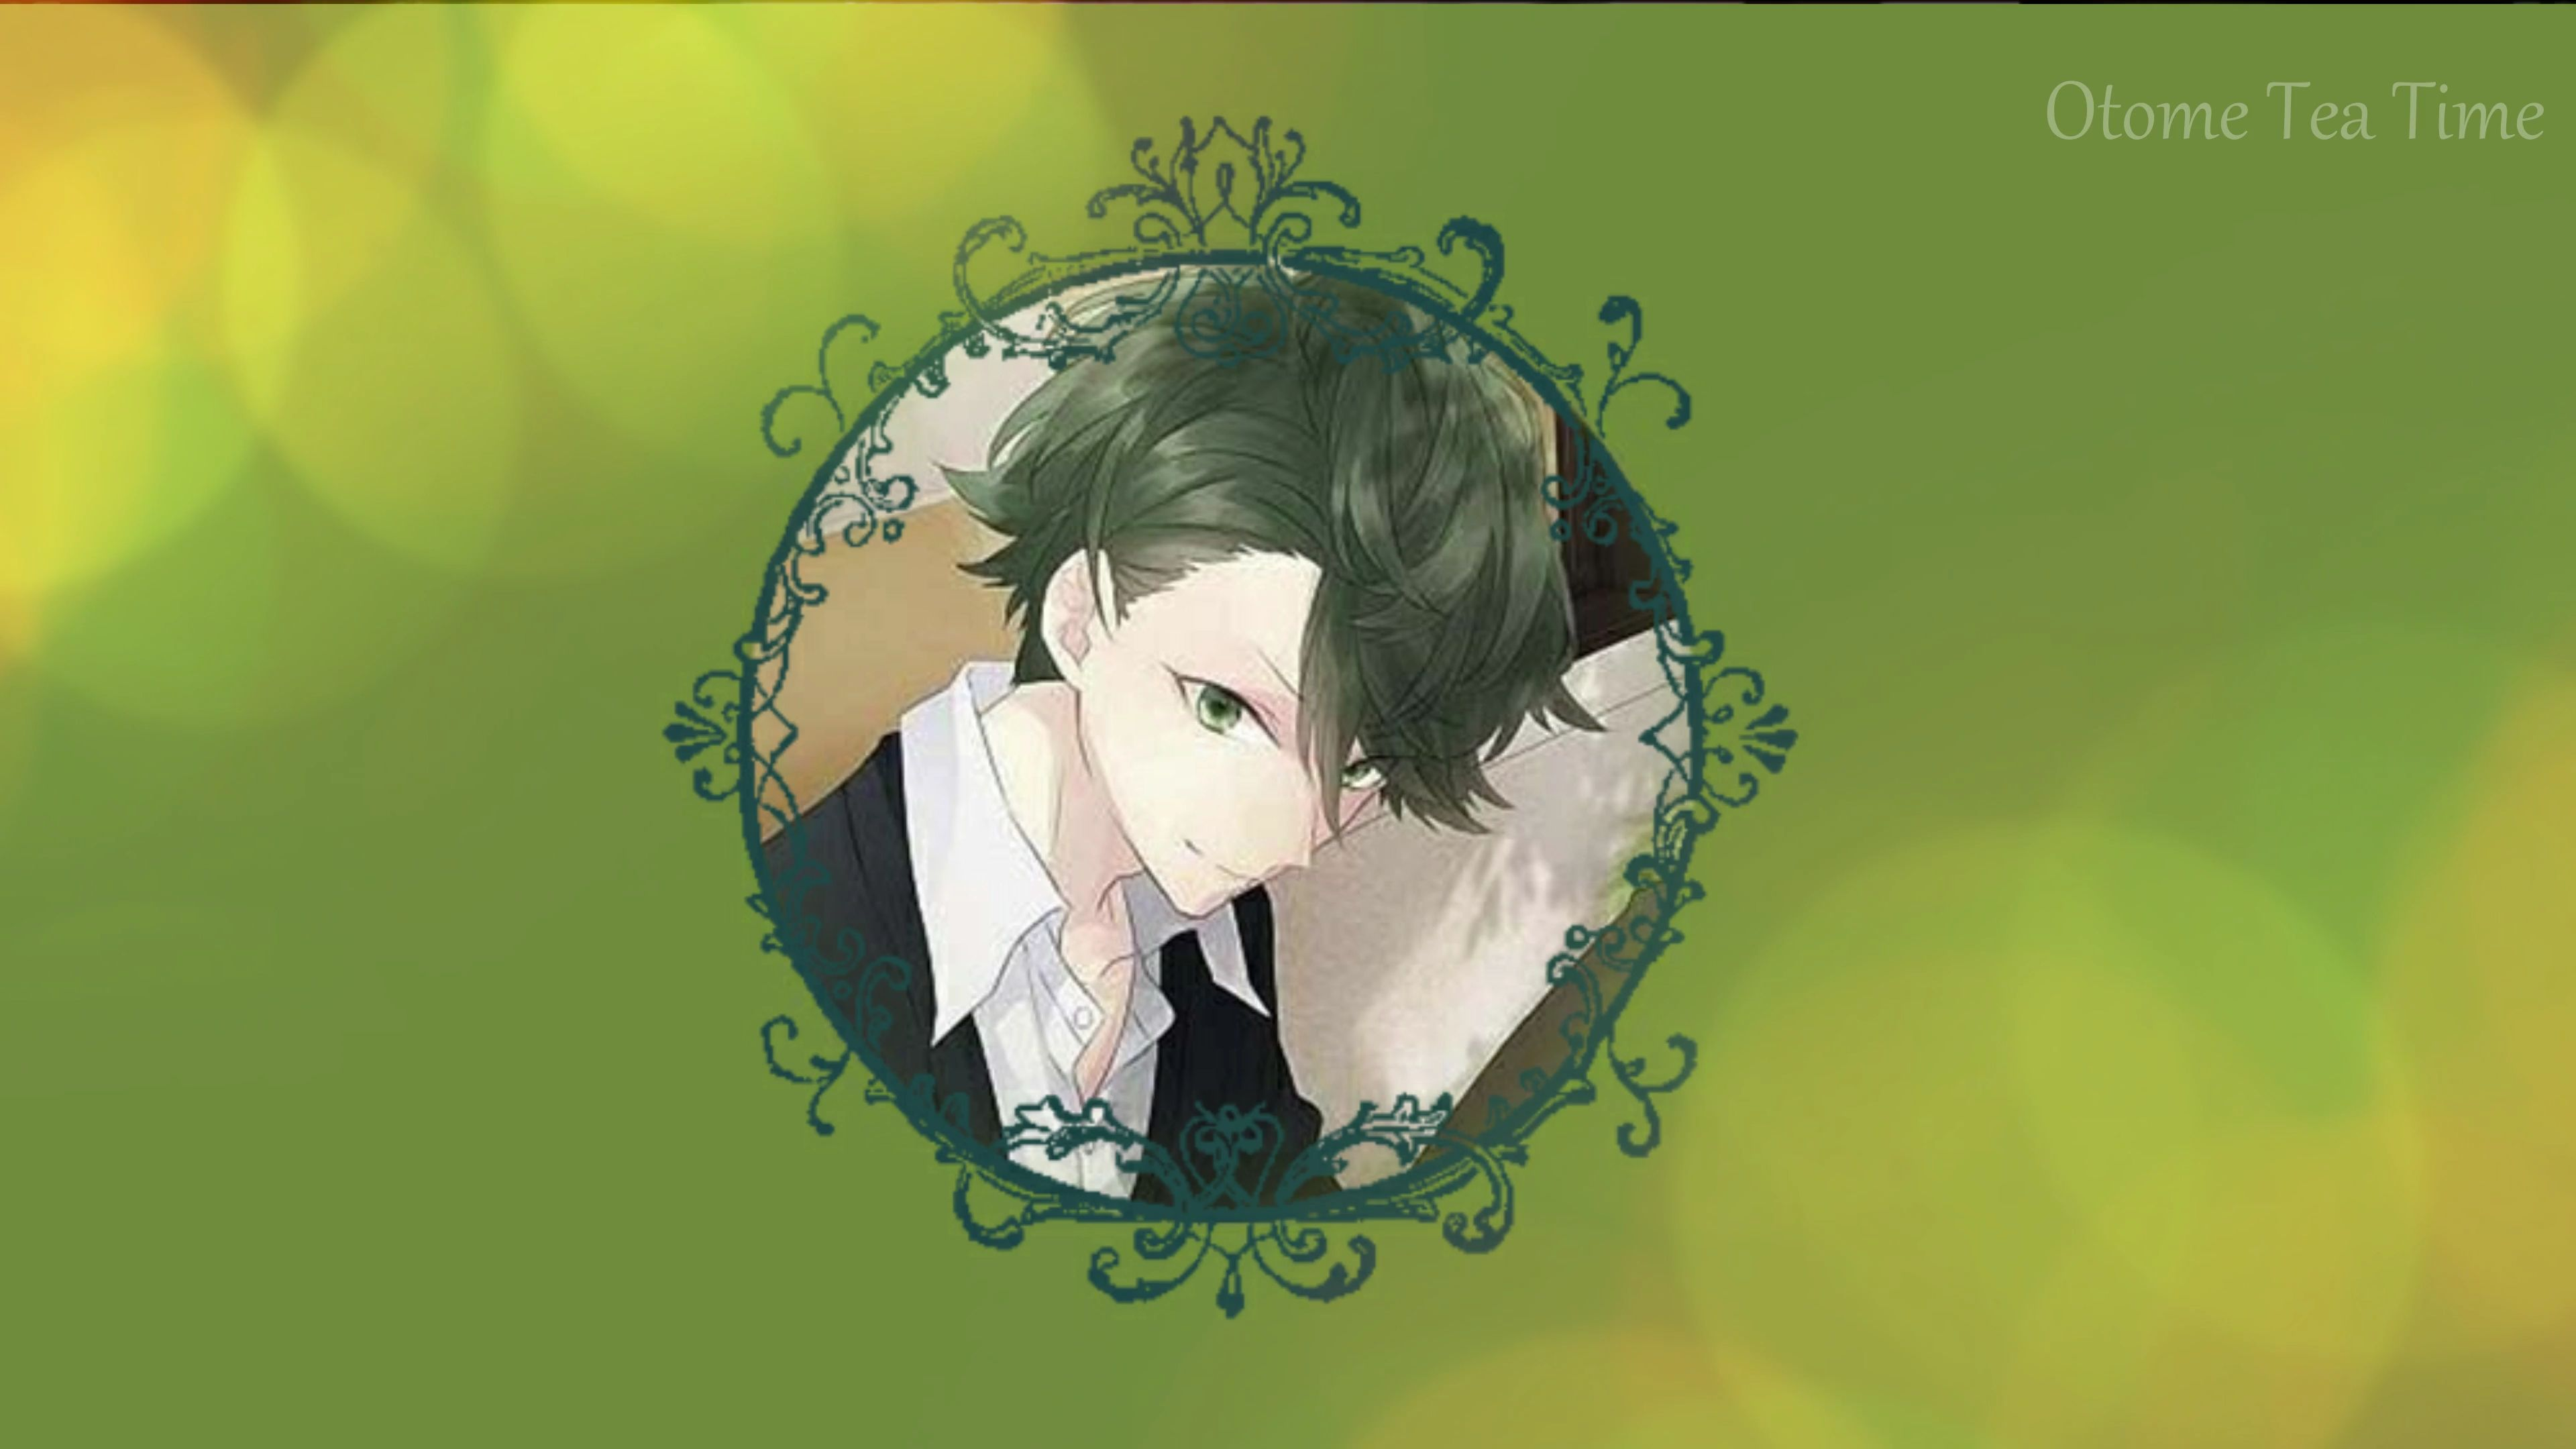 Please consider buying the CD to support the seiyuu #otome drama cd